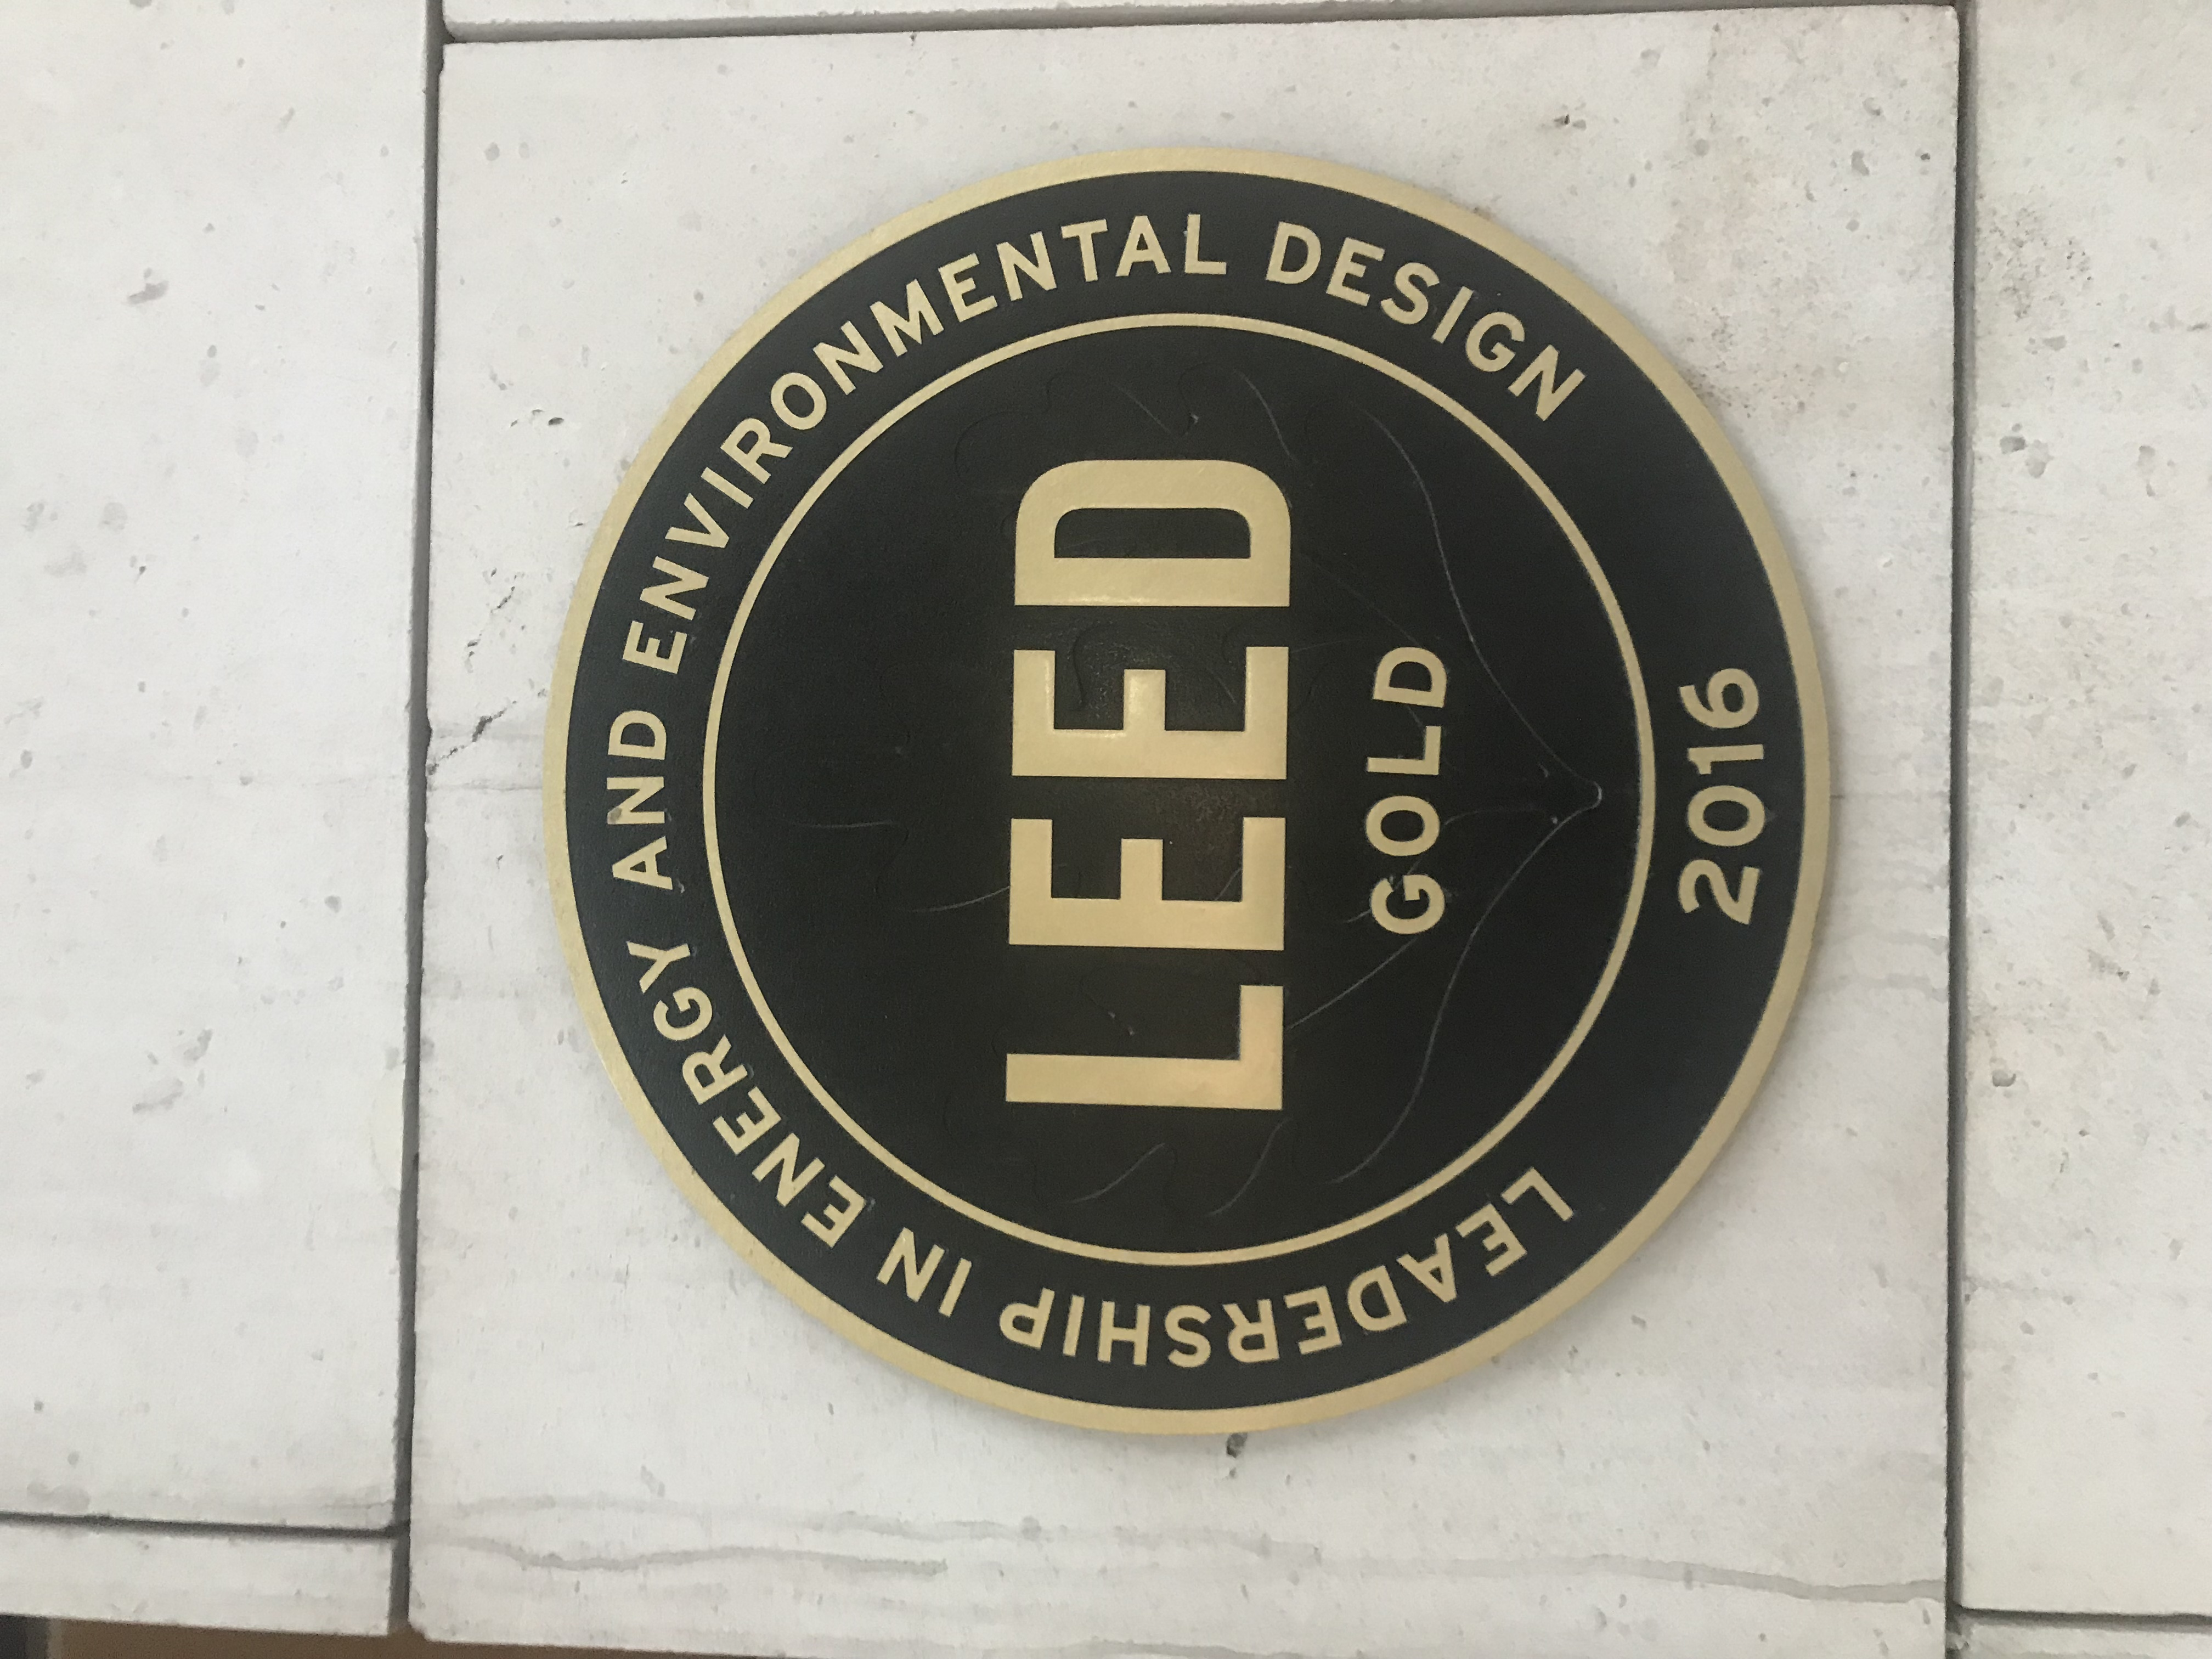 Unique gallery of leed certification wiki business cards and resume file leed gold 2016 plaque serrano 55 madrid wikimedia mons xflitez Gallery